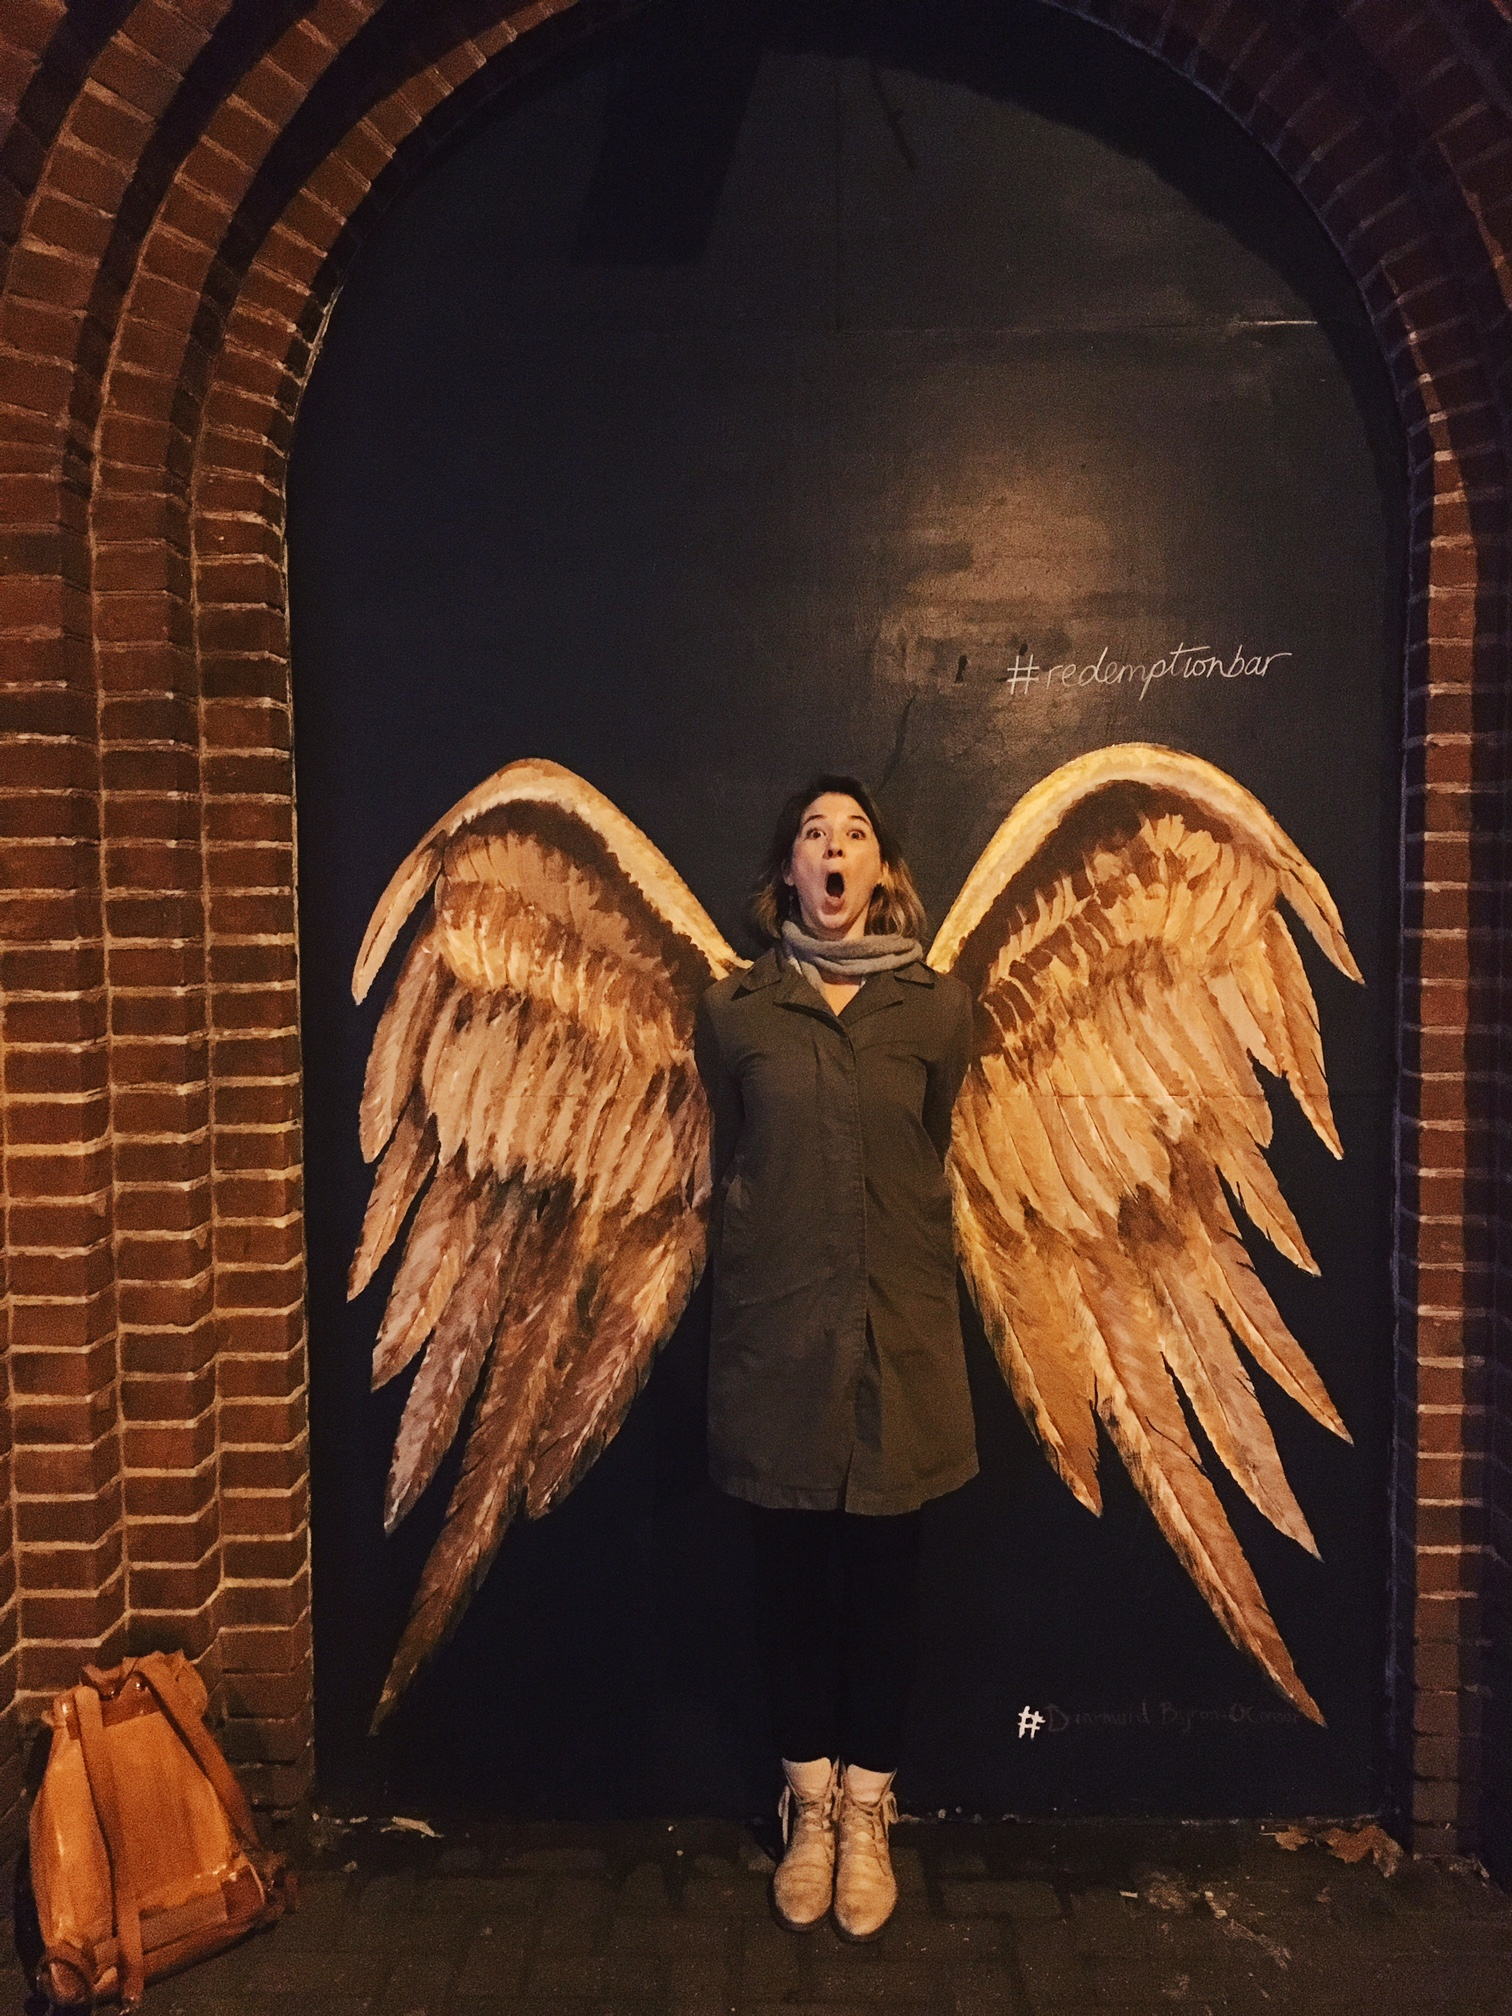 She always wanted to be an Angel...